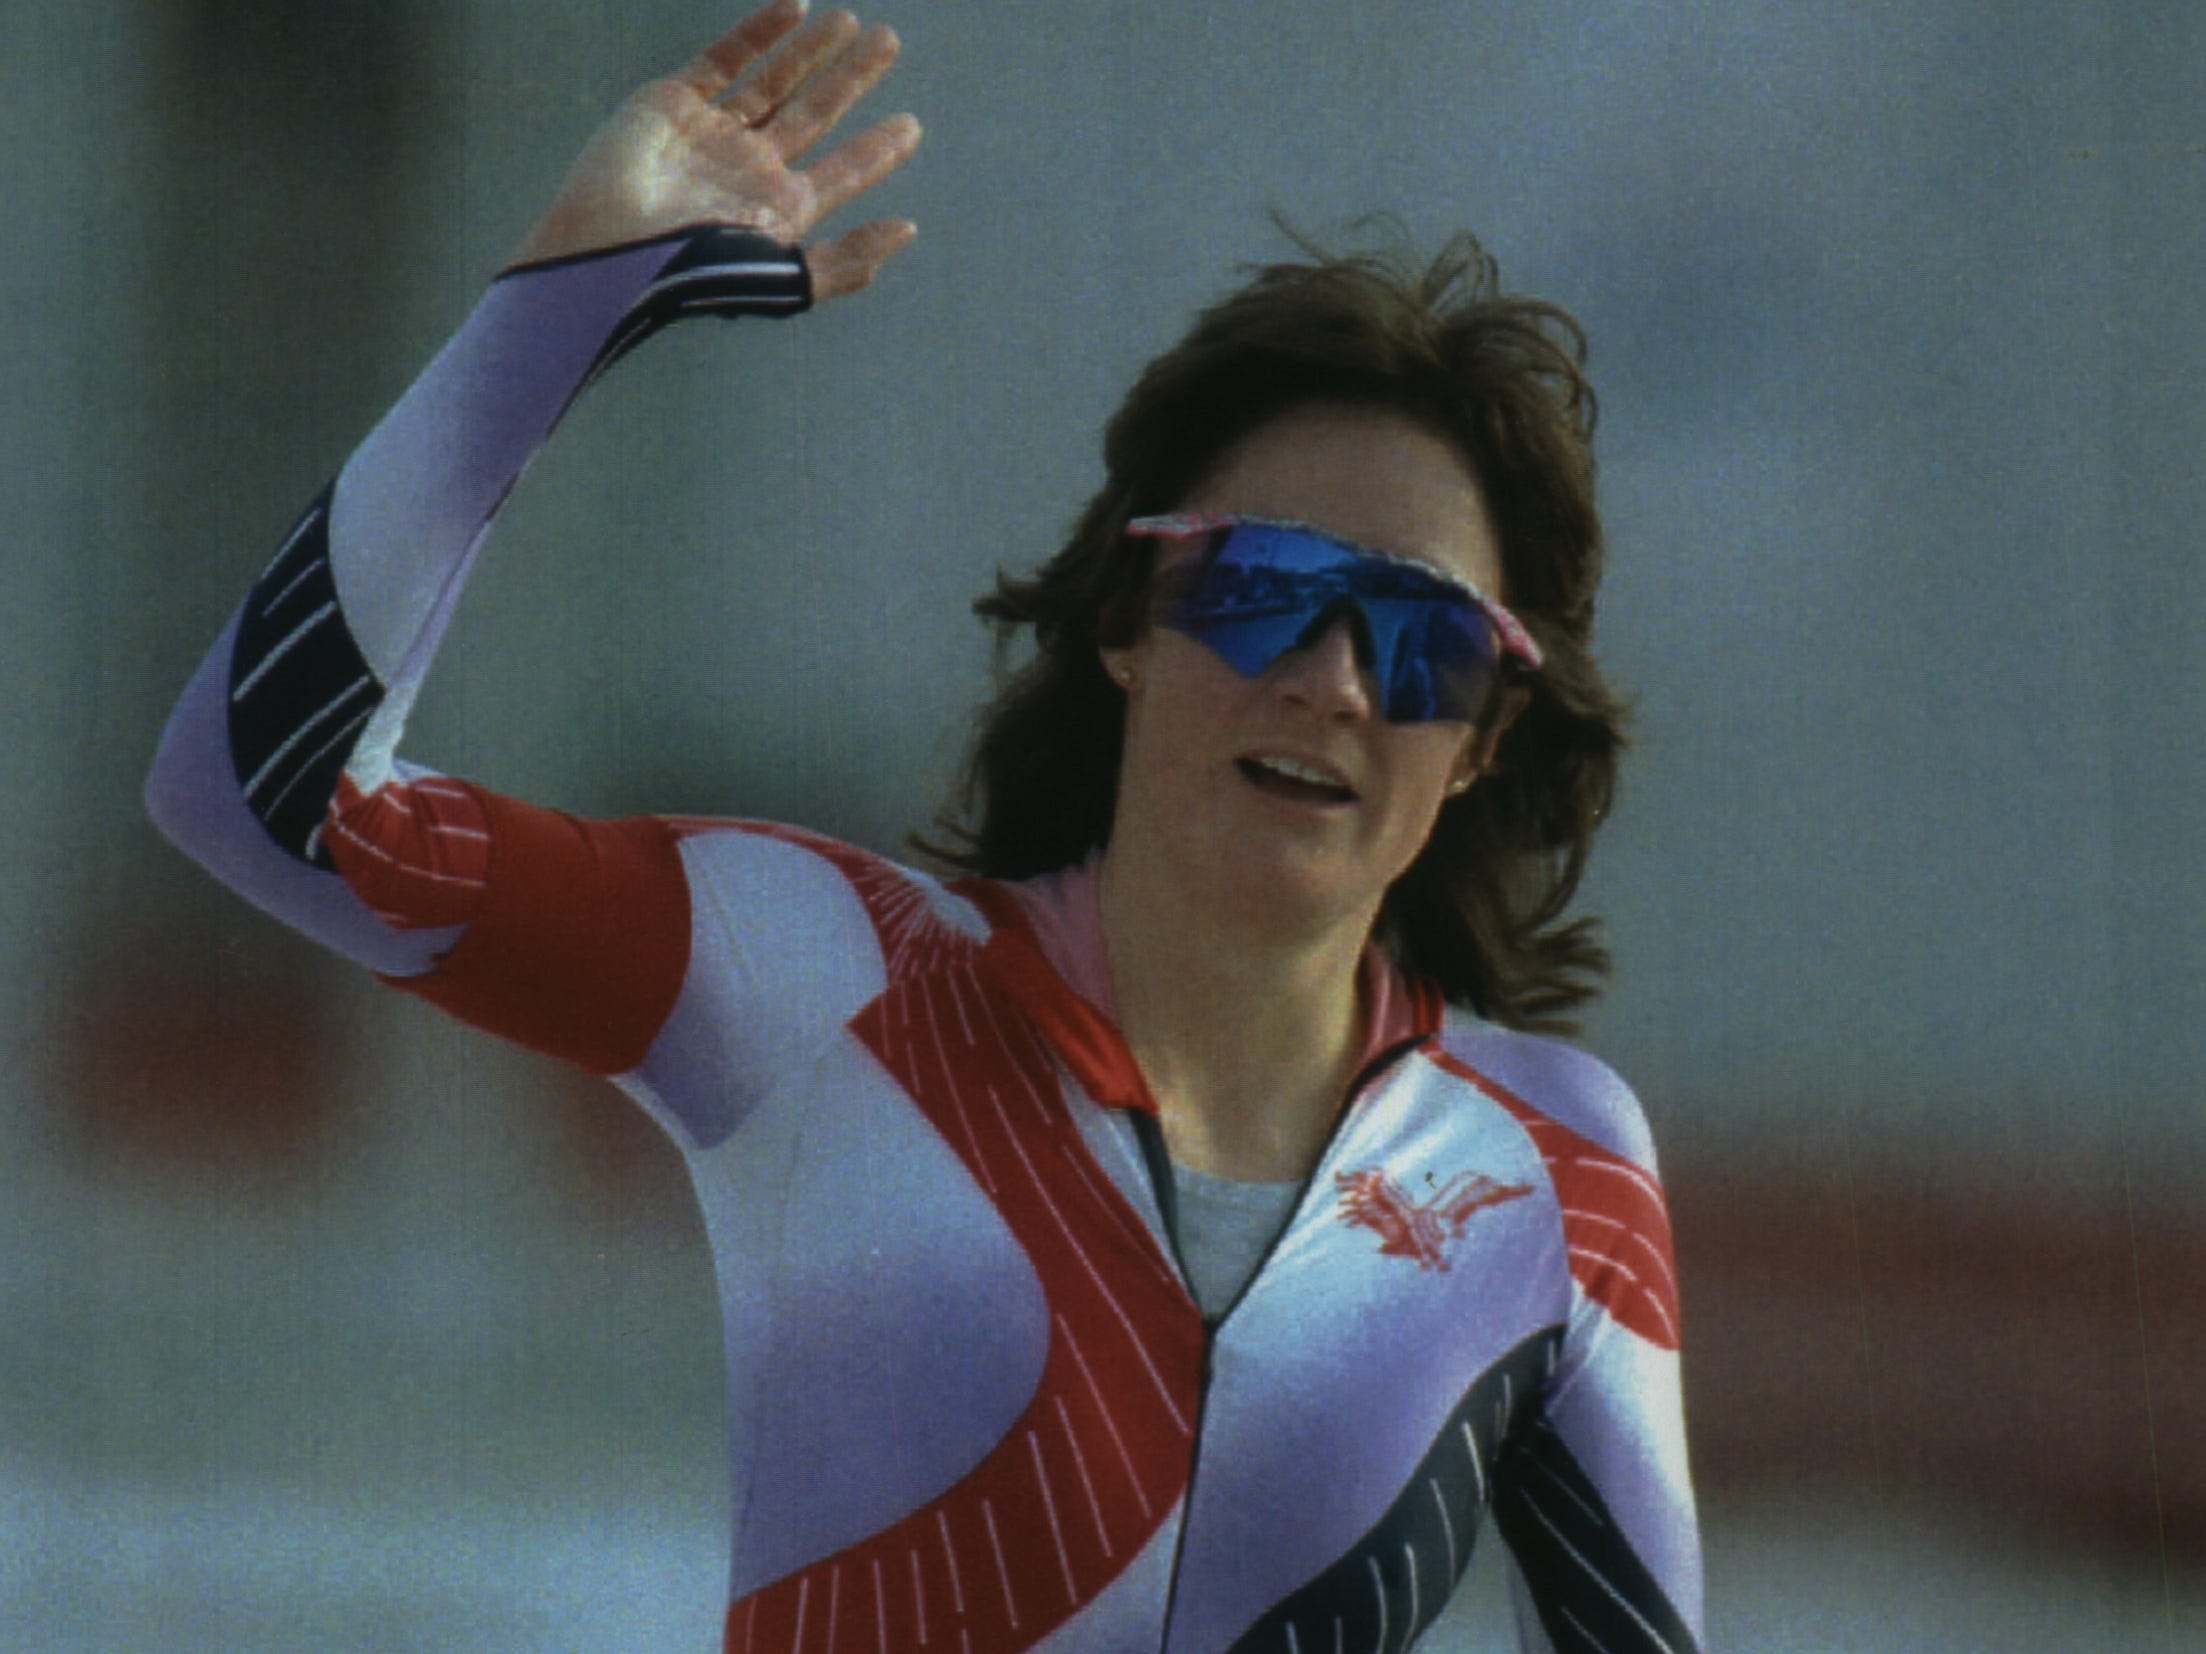 US Speed Skater Bonnie Blair of Champaign, Illinois, waves after competing in the women's 1,000-meter Olympic race Friday in Albertville, France.  She was as good as gold.  She won her second gold medal in this year's Winter Olympics and the third in her career.